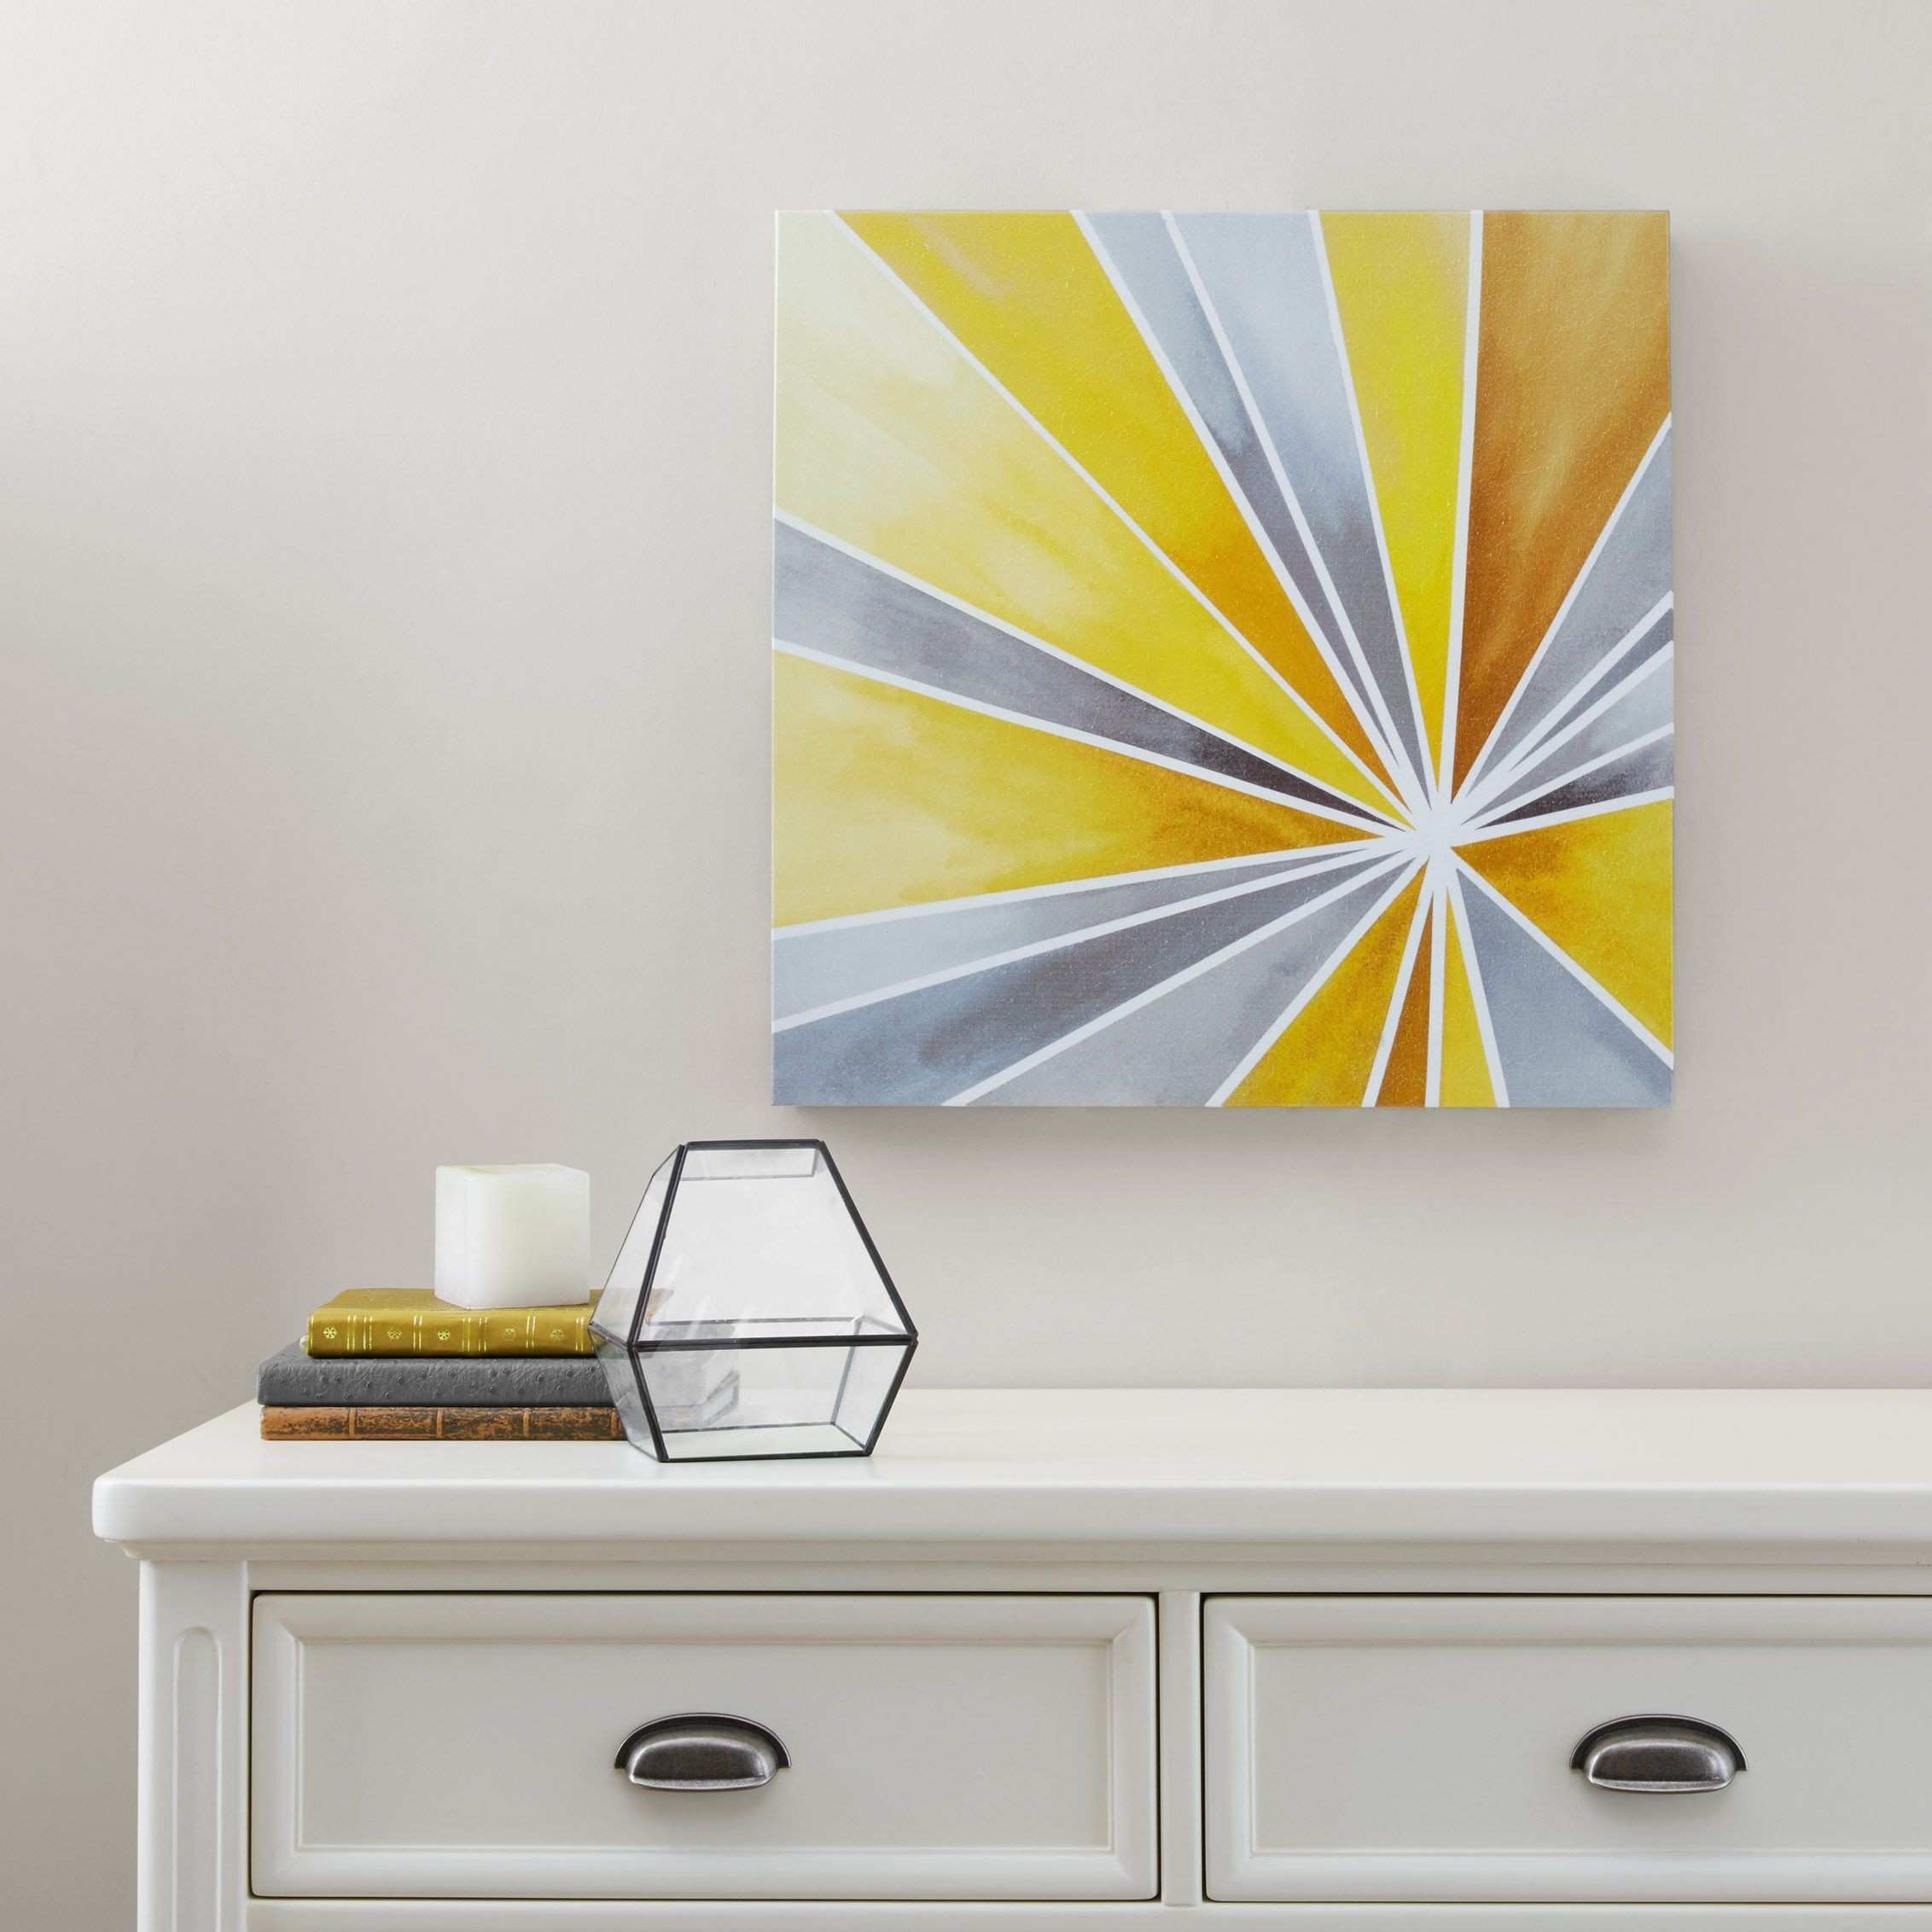 Bring a ray of sunshine with this fun and vibrant abstract piece